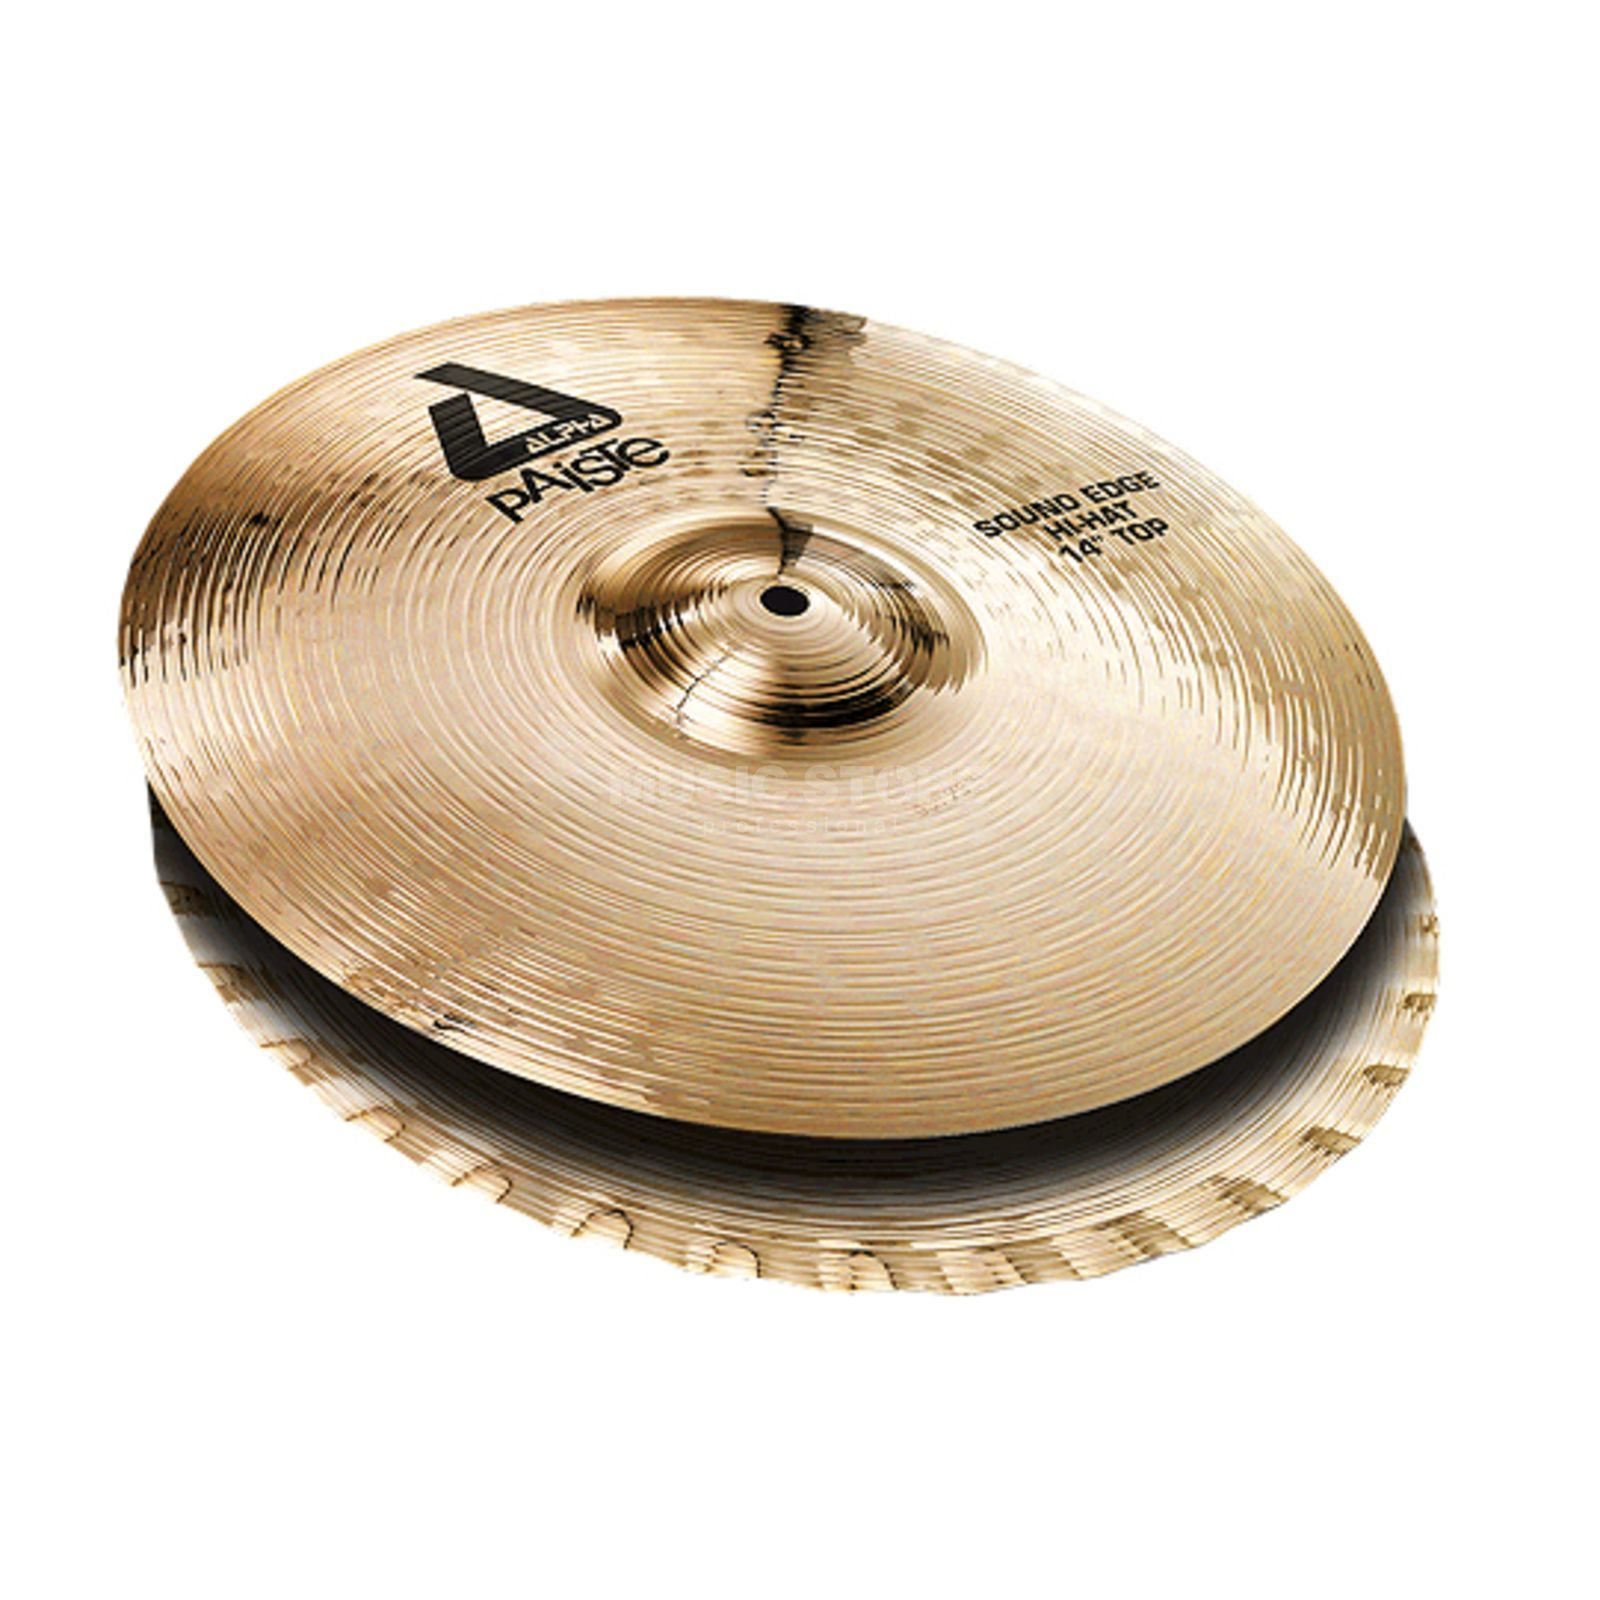 "Paiste Alpha Sound Edge HiHat 14"", Brilliant Produktbild"